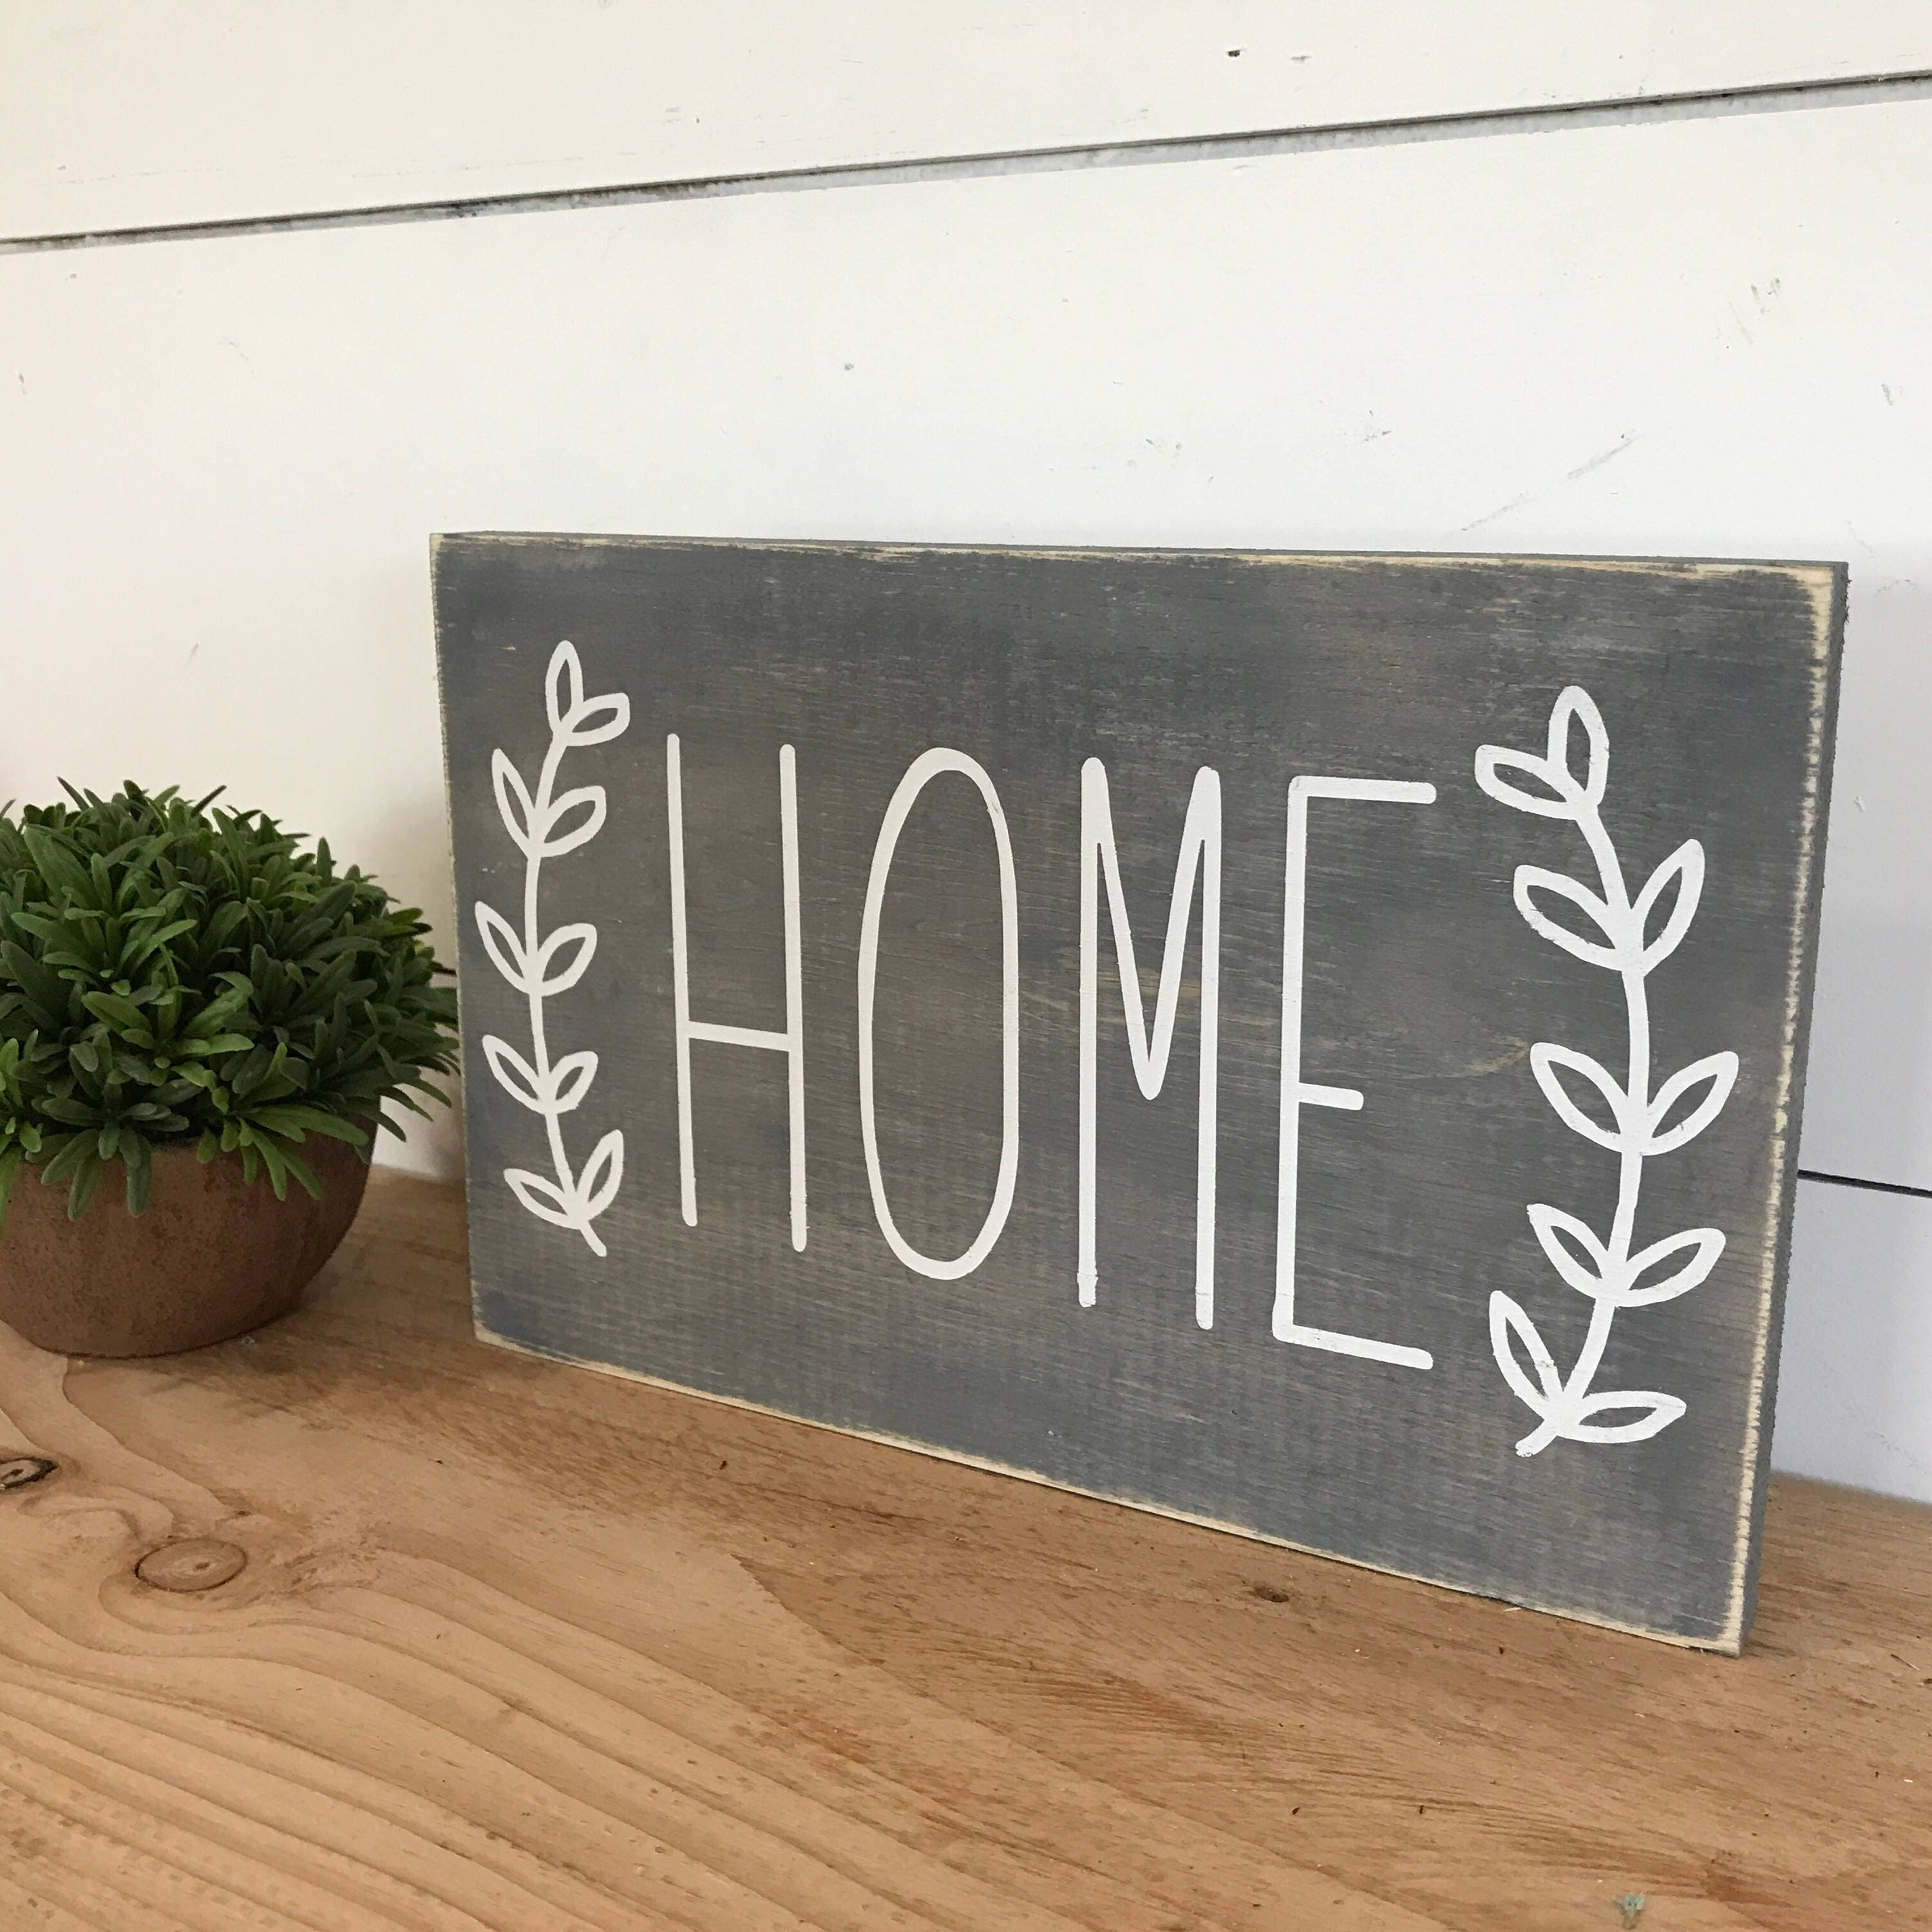 50 Farmhouse Style Gift Ideas From Etsy: Home Sign Housewarming Gift Home Sweet Home Farmhouse